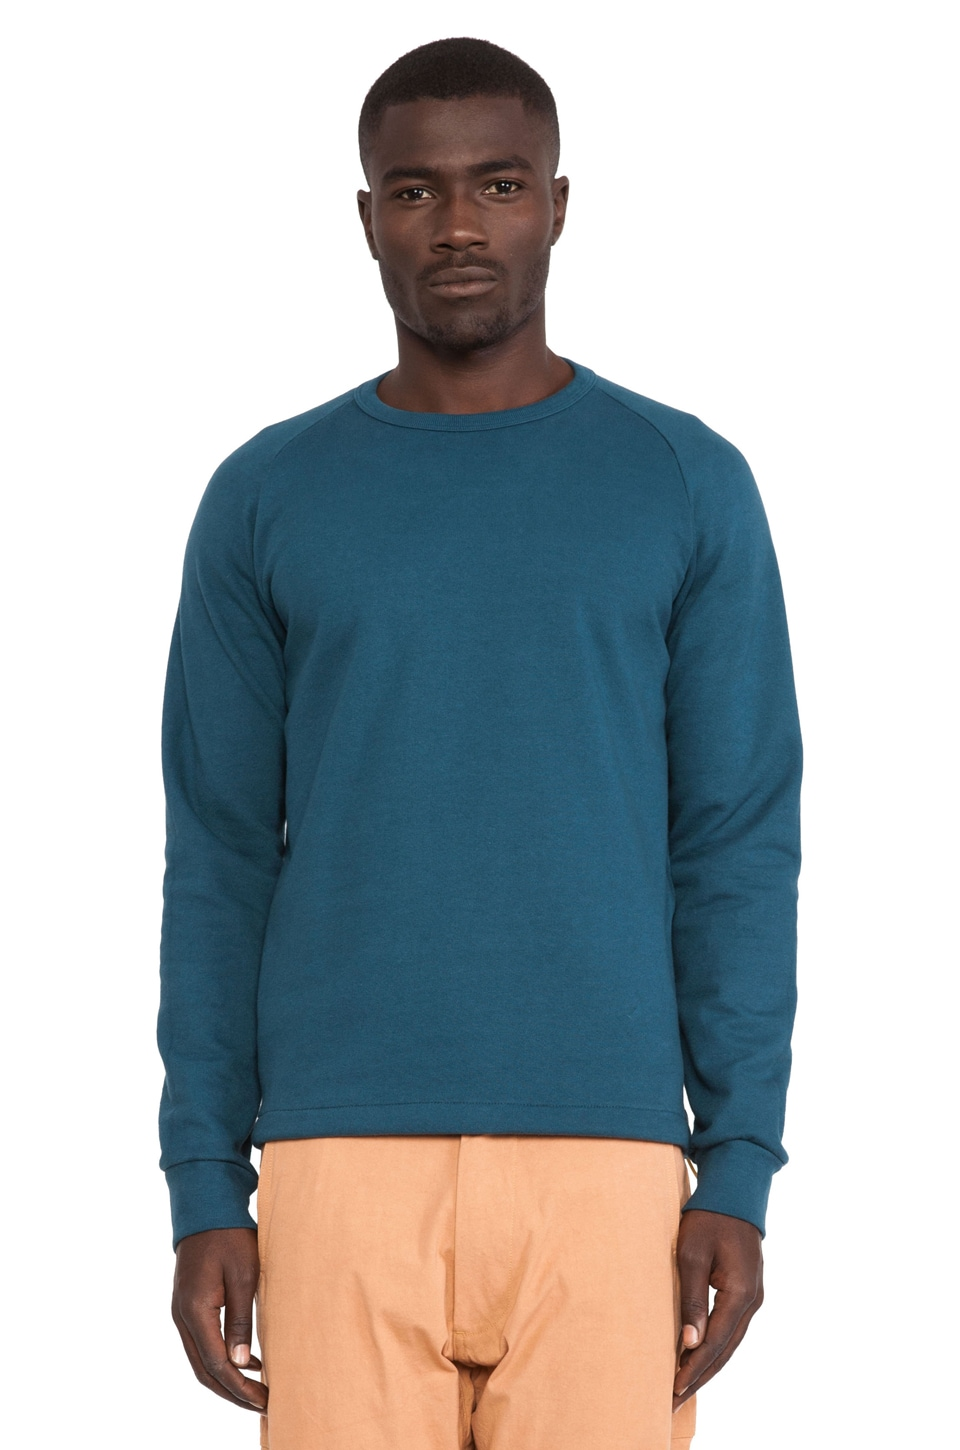 AXS Folk Technology French Terry Crew Sweatshirt in Deep Blue